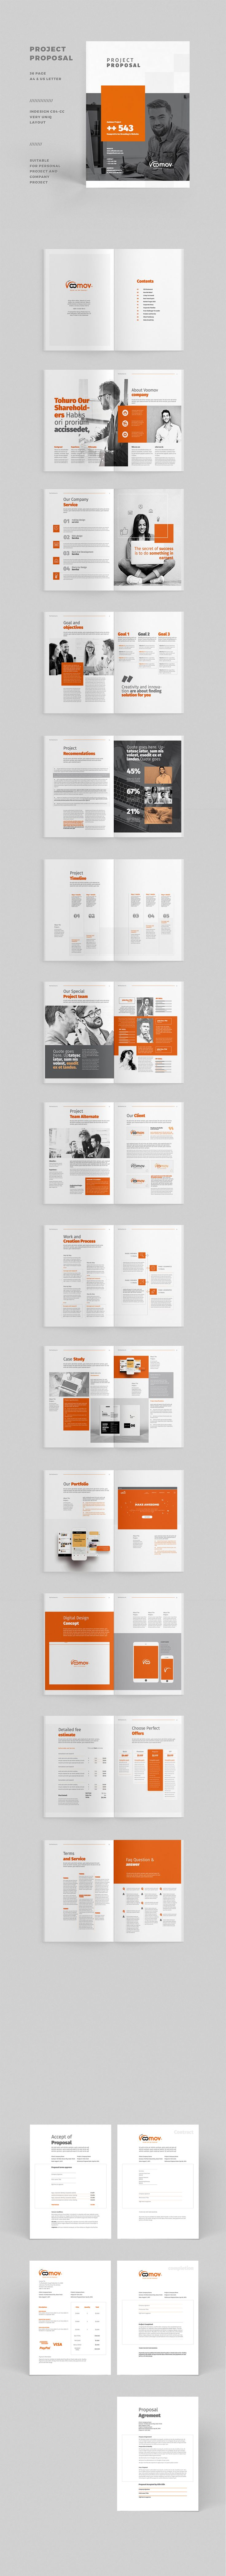 17 best ideas about proposal letter sample of brand brief brochure design business business proposal clean corporate creative design identity indesign indesign templates informational